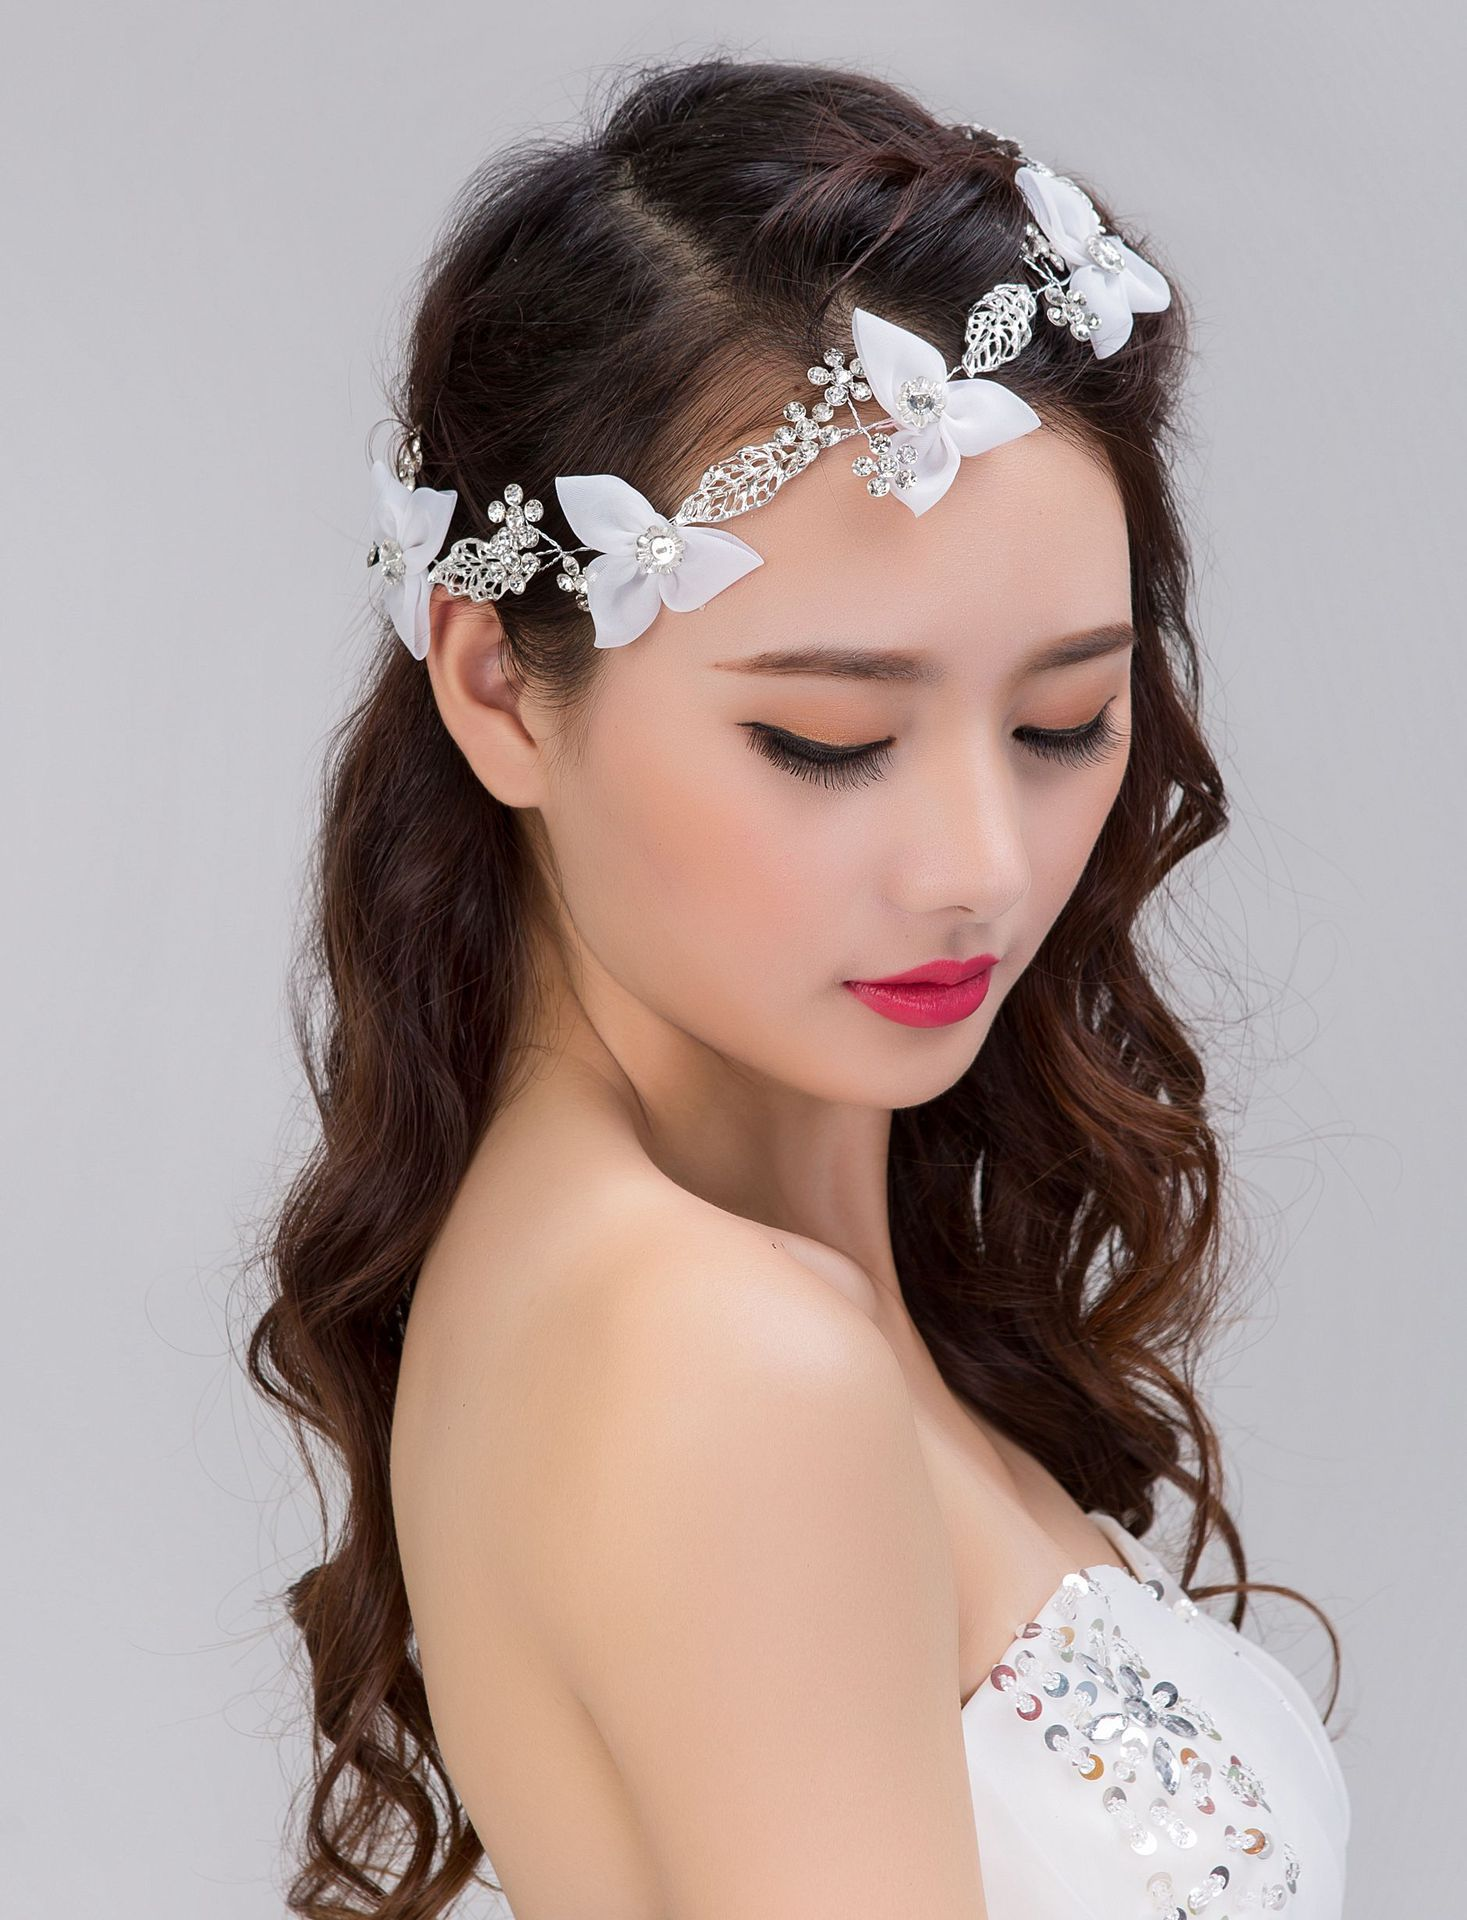 headdress han edition manual crystal set auger hollow out leaf tire wholesale wedding hair accessories manufacturer-in hair accessories from mother &